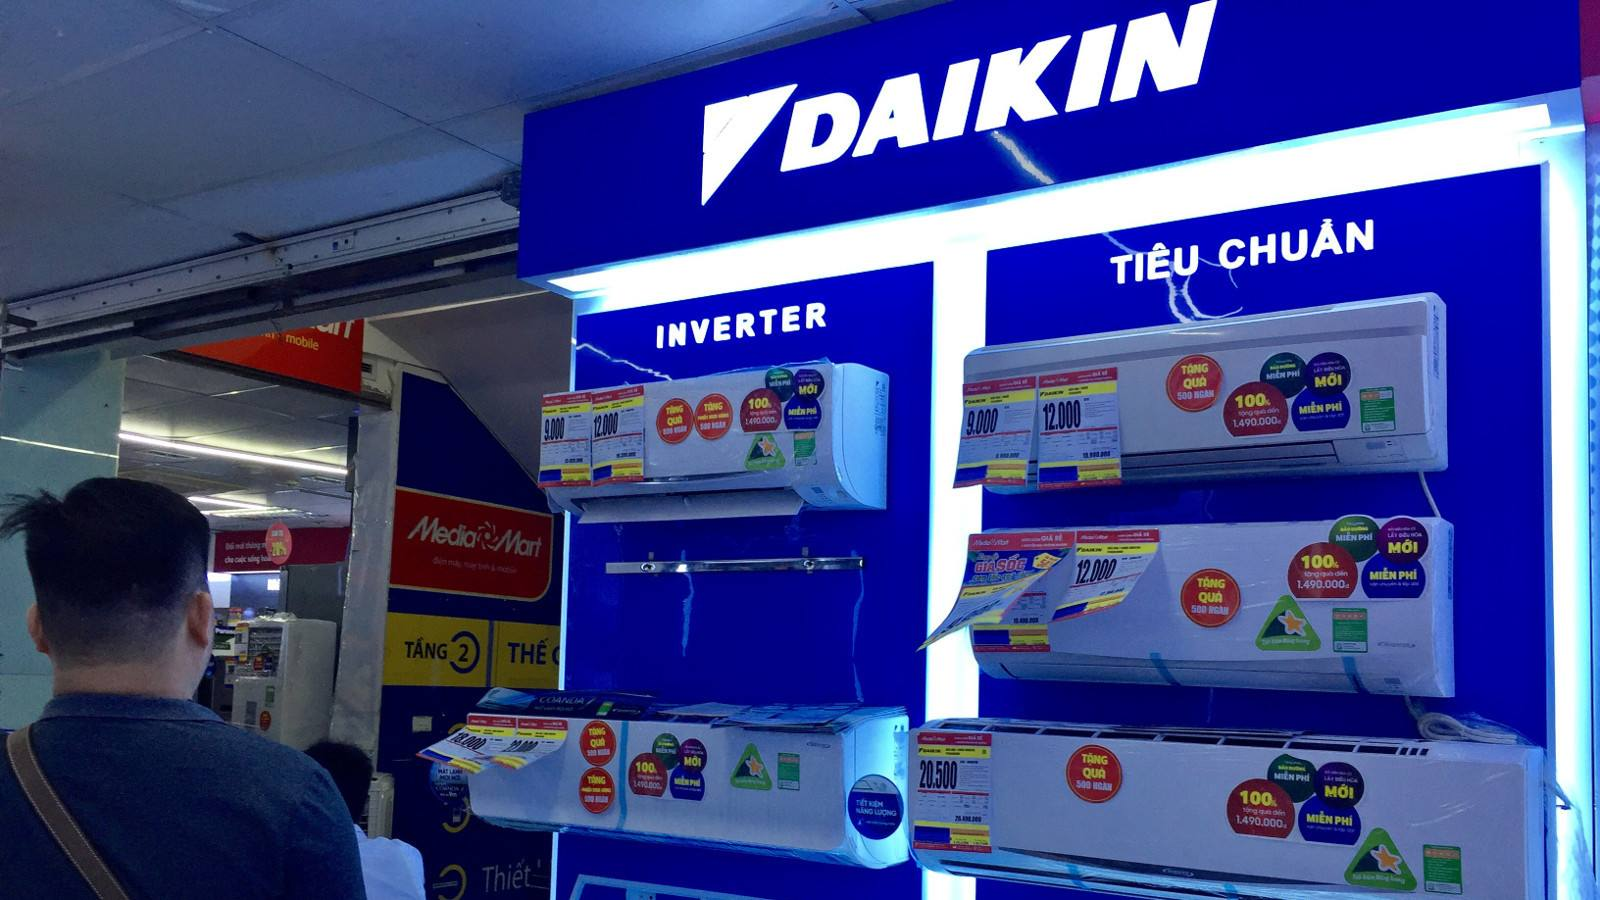 Toshiba to produce air conditioners in India - Nikkei Asian